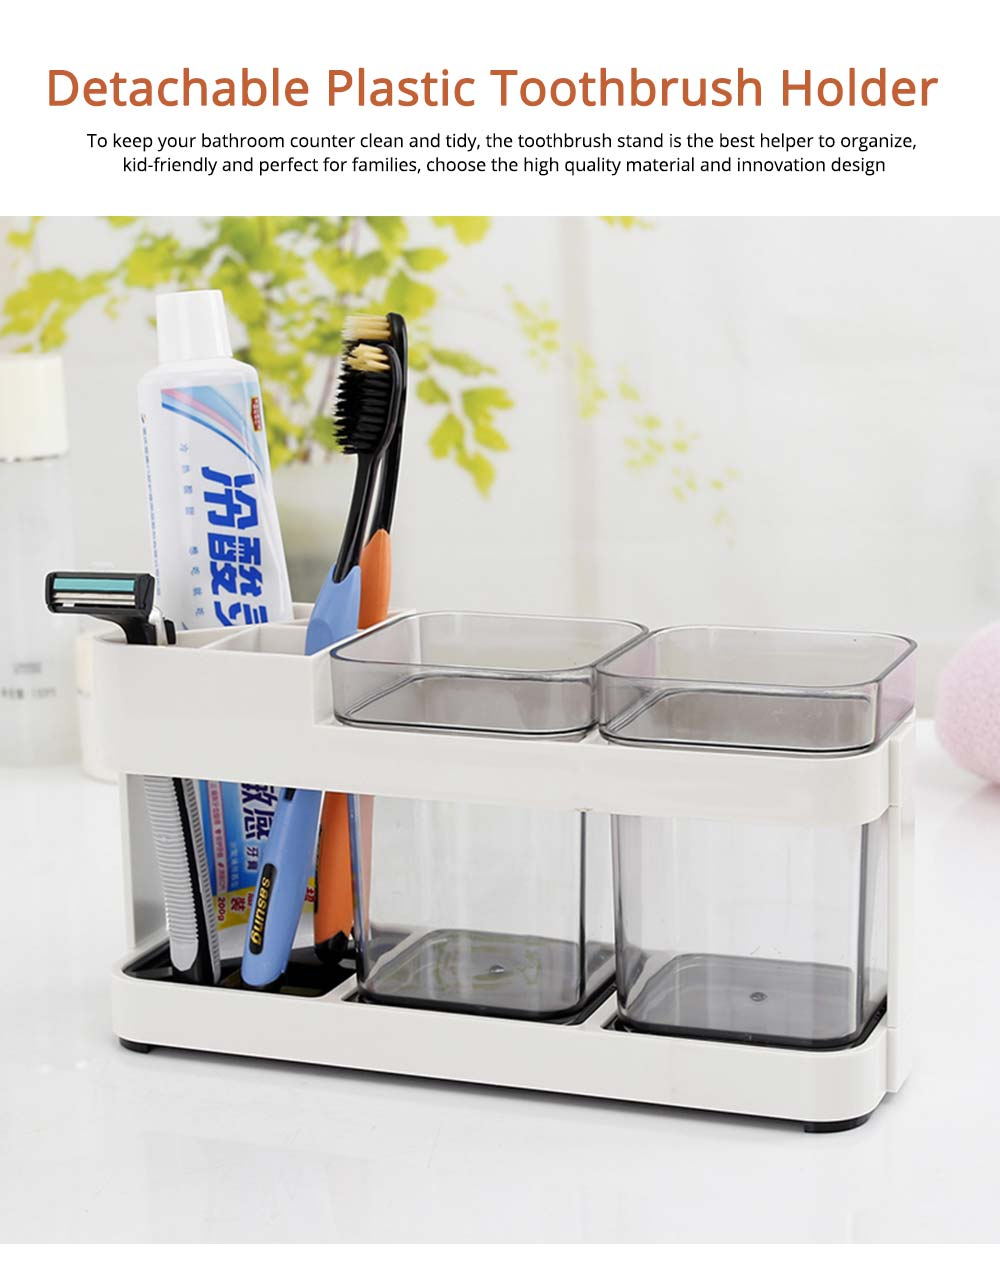 Detachable Plastic Toothbrush Holder with Cup, Wash Supplies Storage Shelf for Household Use 0